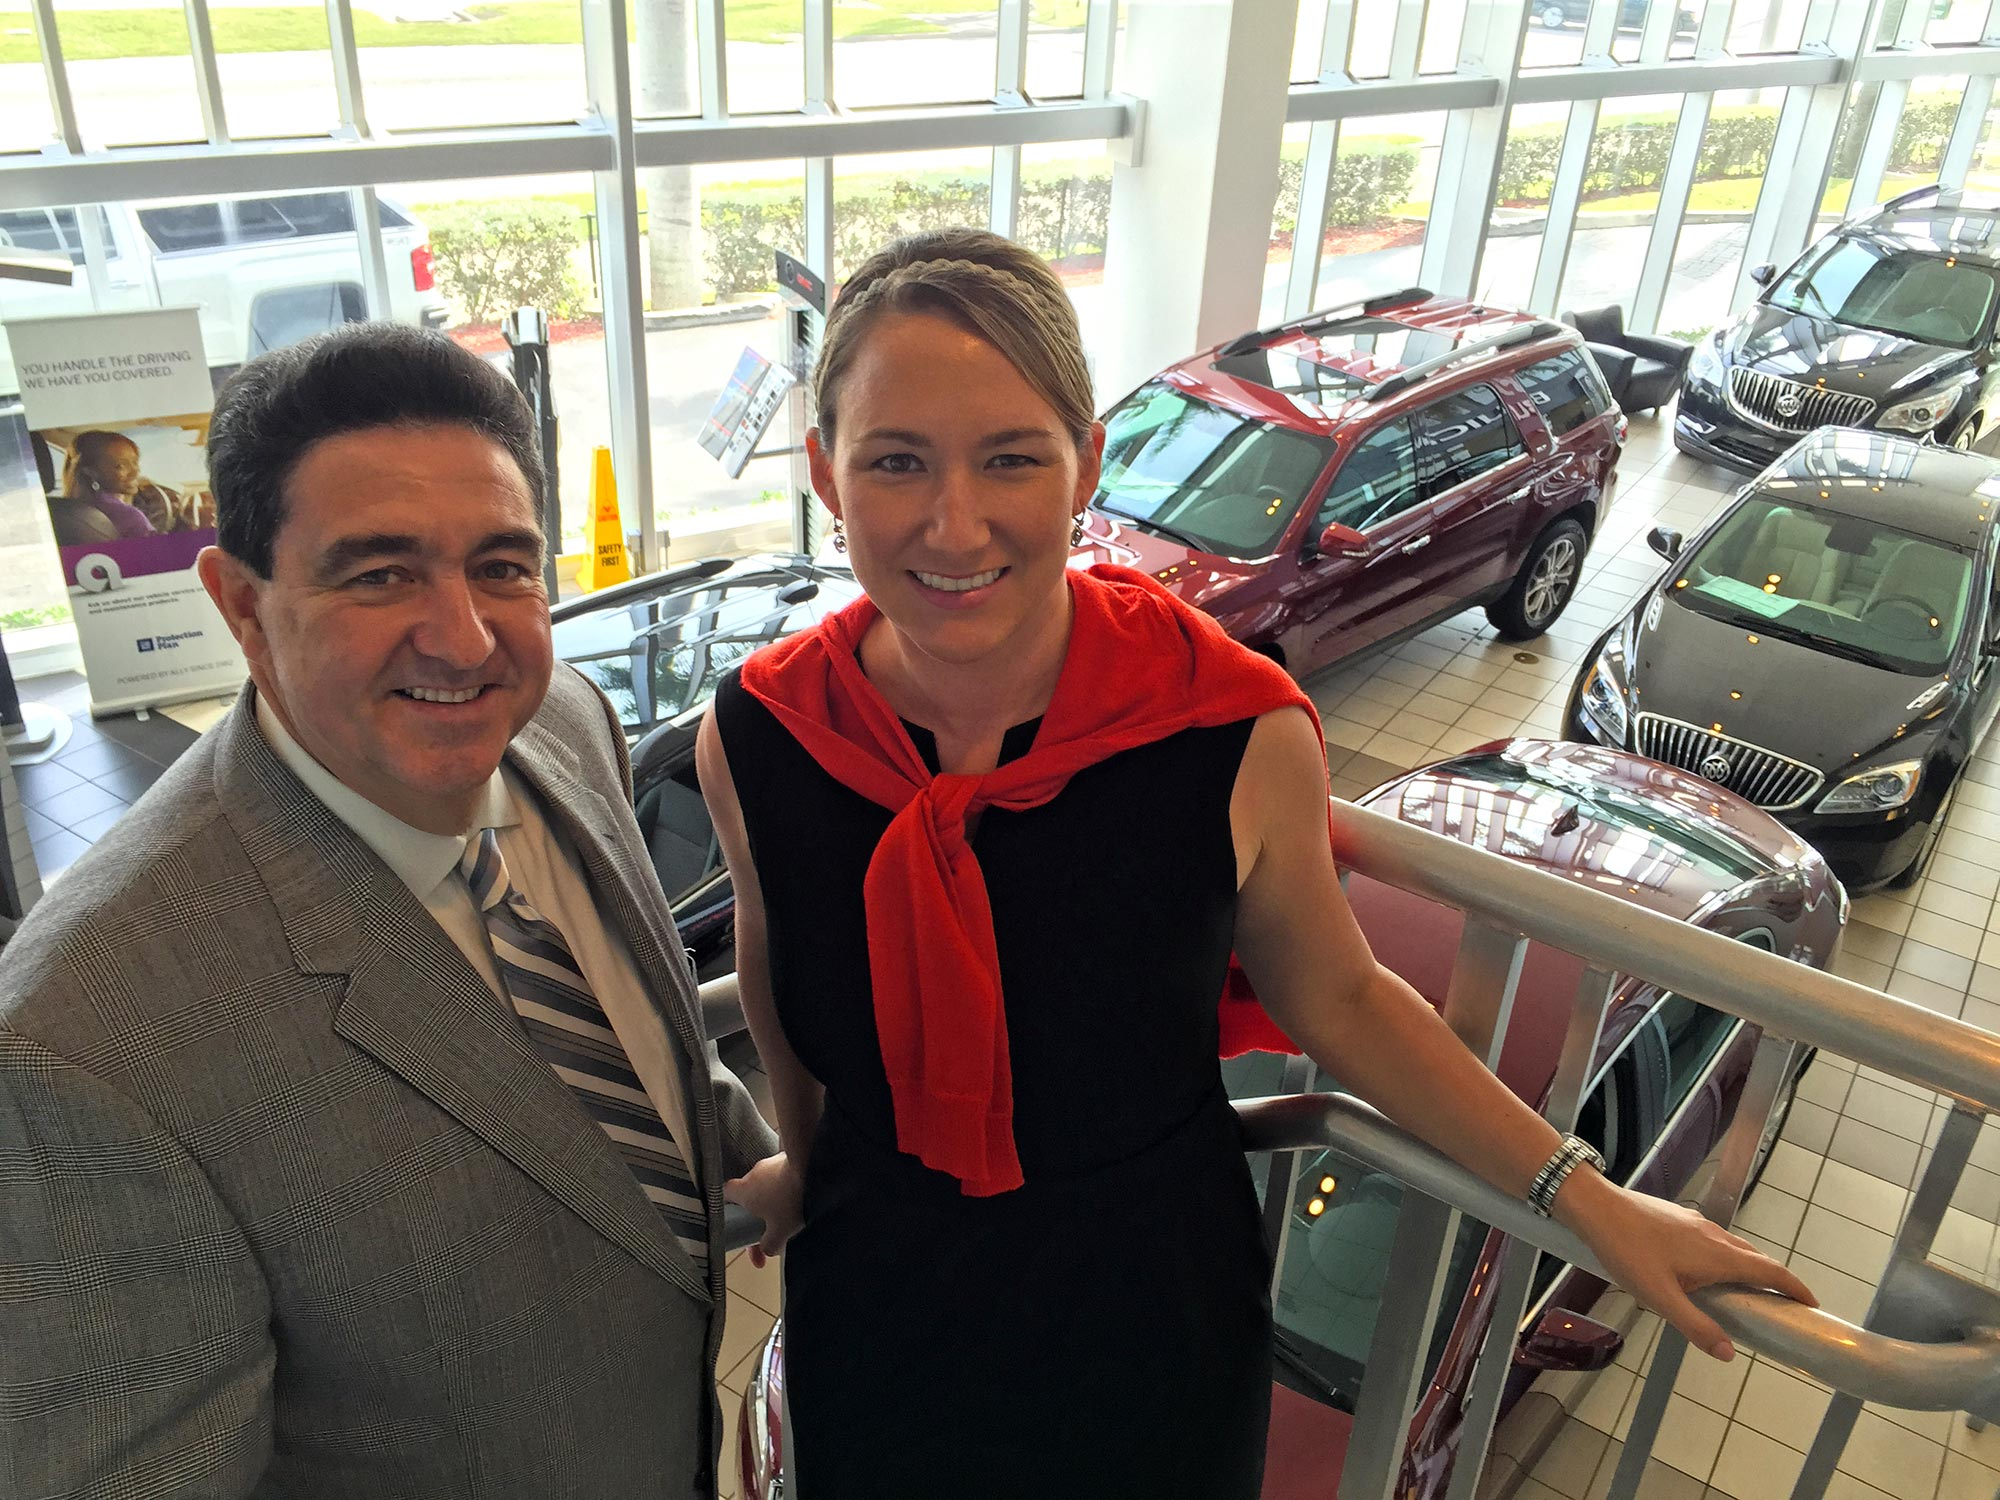 Williamson showroom being used for fundraiser with GSM Benito Ledesma, Jr. and Marketing Director Jennifer Naszradi